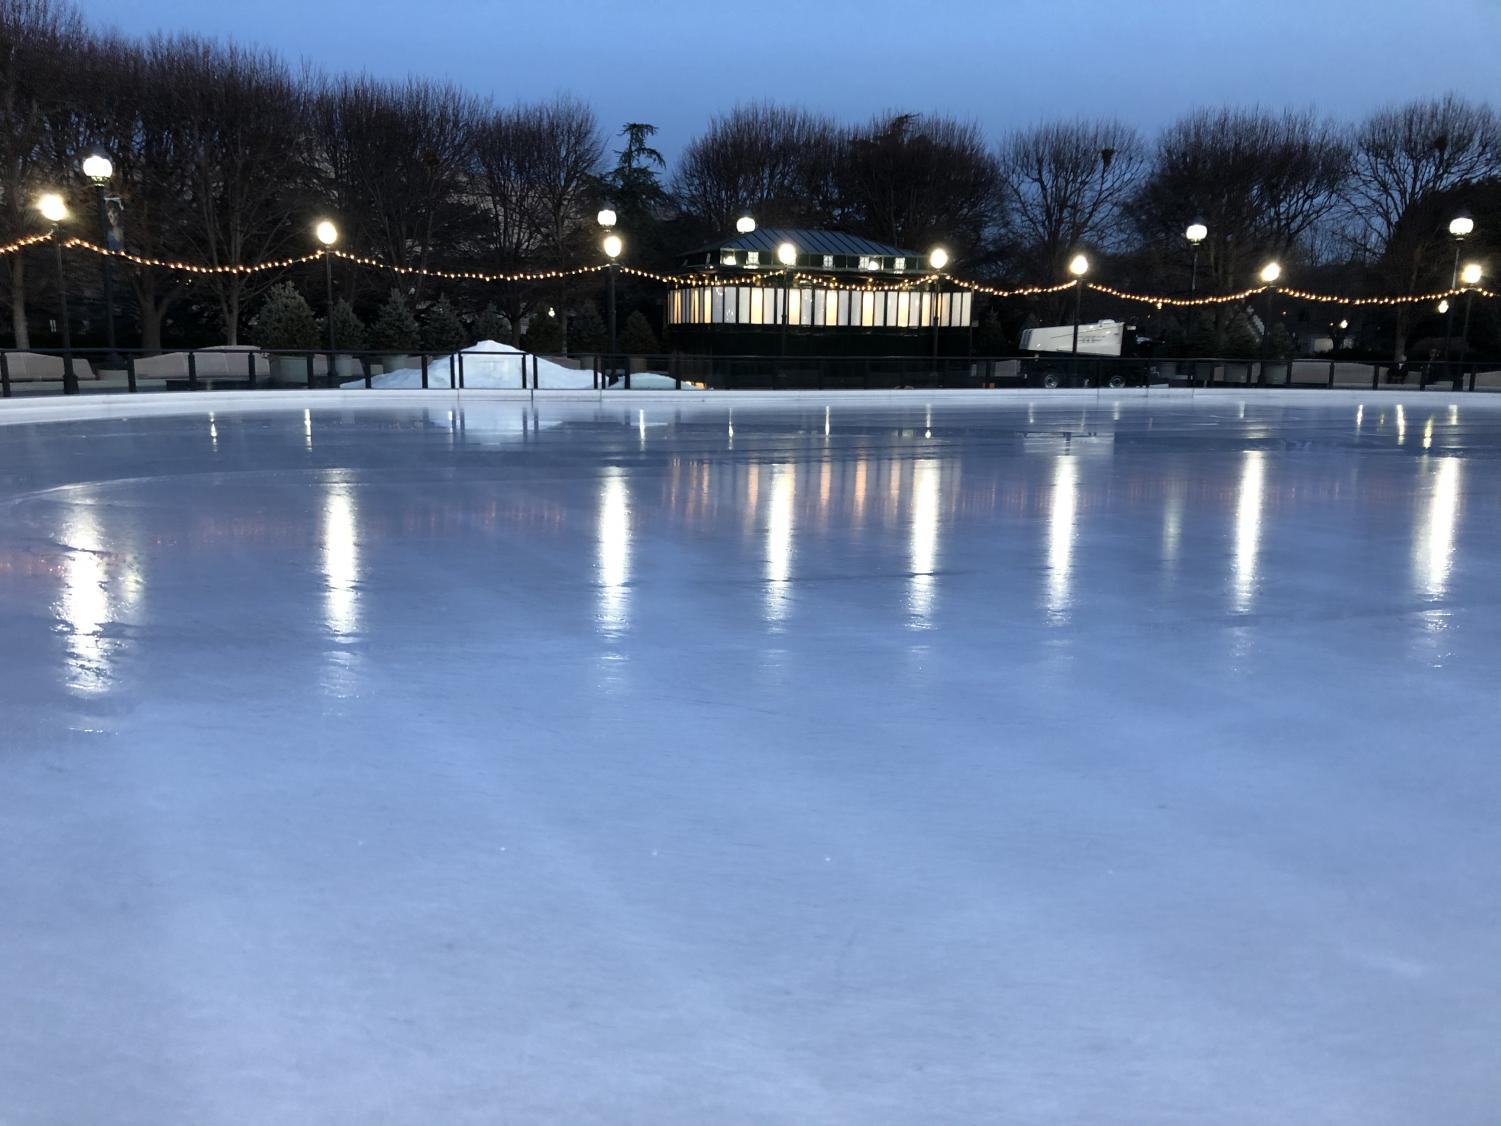 The ice rink at the Sculpture Garden (Photo courtesy of Ruby Mason)